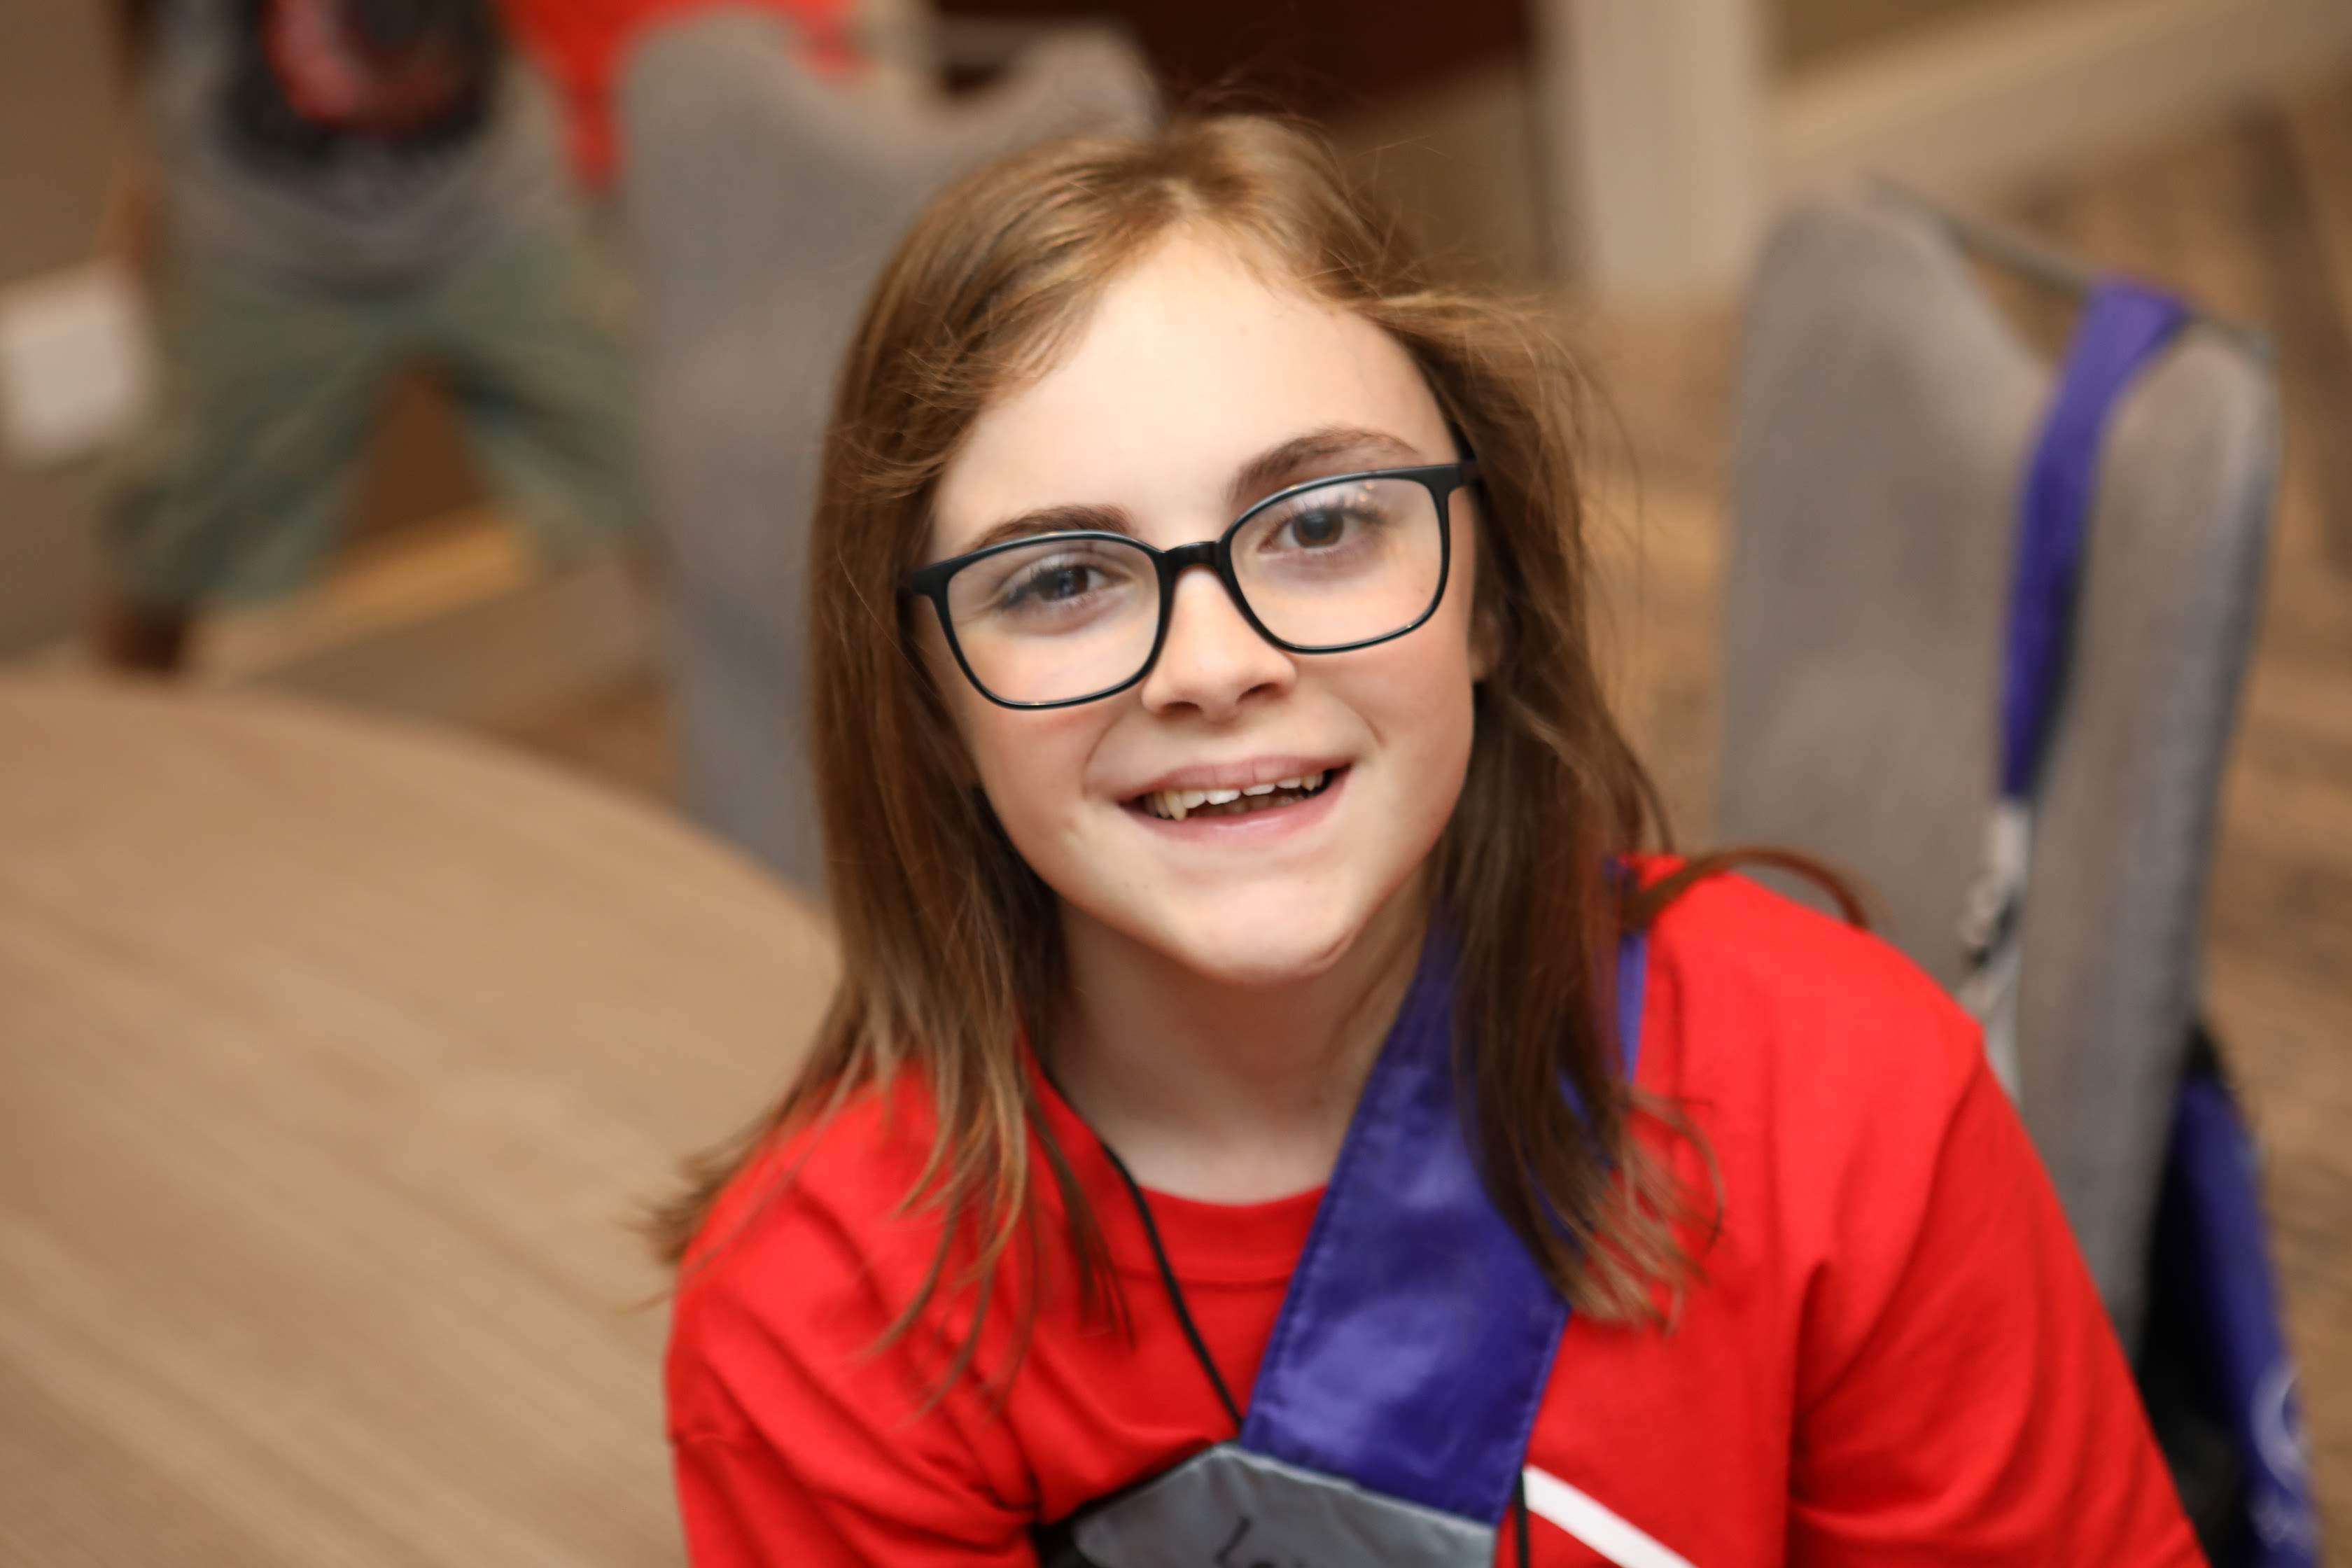 young girl with medium brown hair and glasses with VEDS smiling at the camera